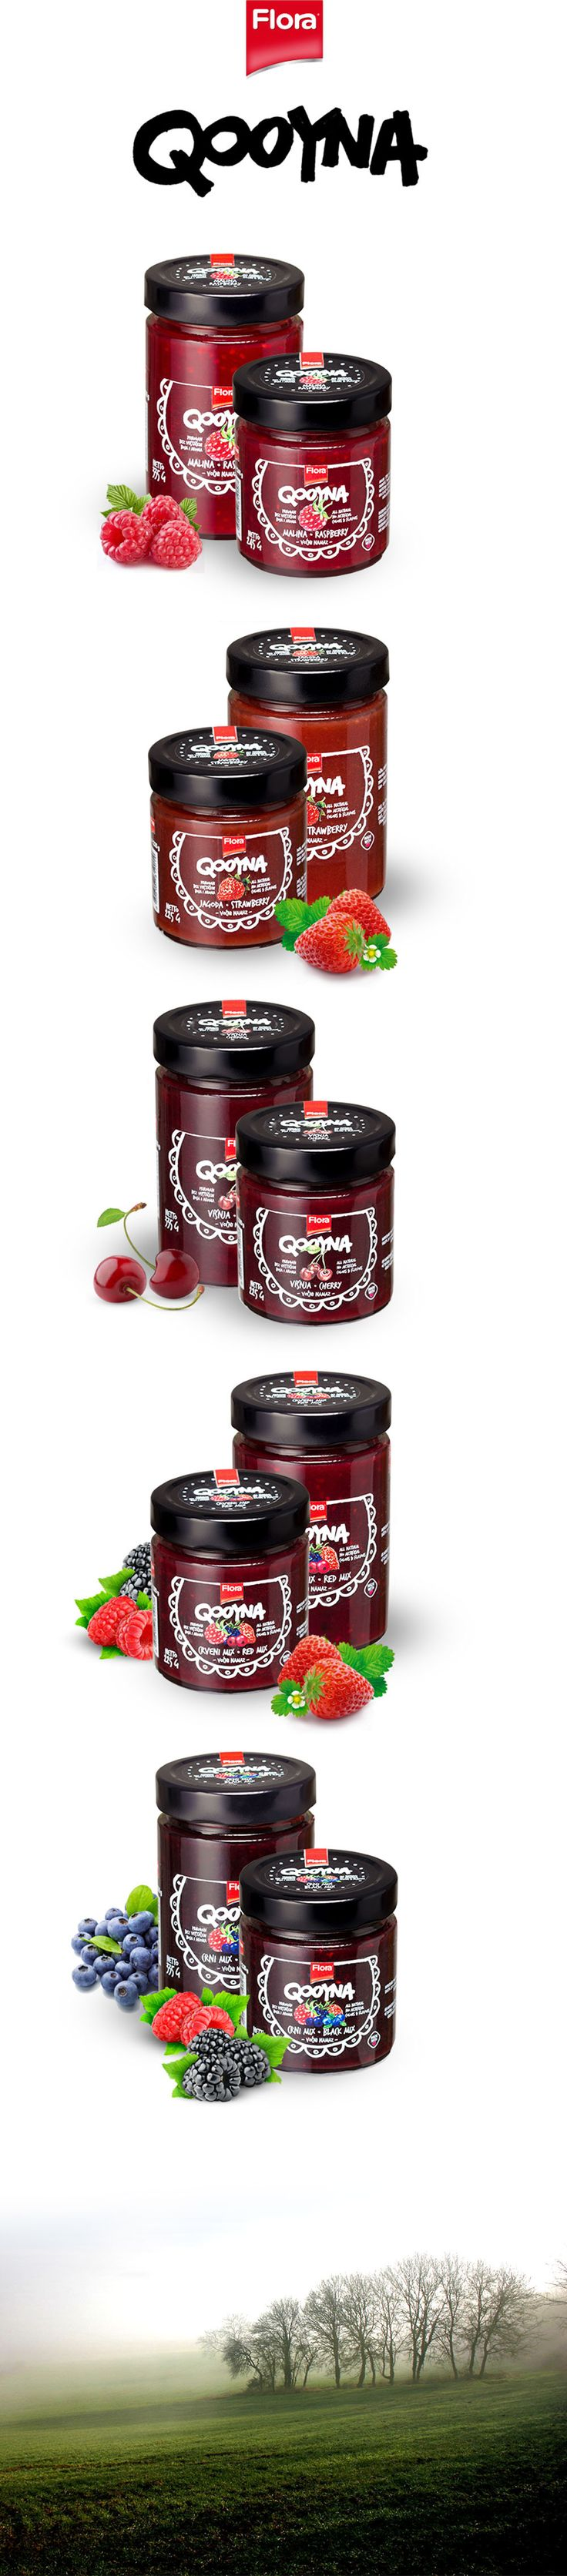 Qooyna Confitures by Flora by Marko Vajagic, Belgrade, Serbia   Packaging design on Behance PD